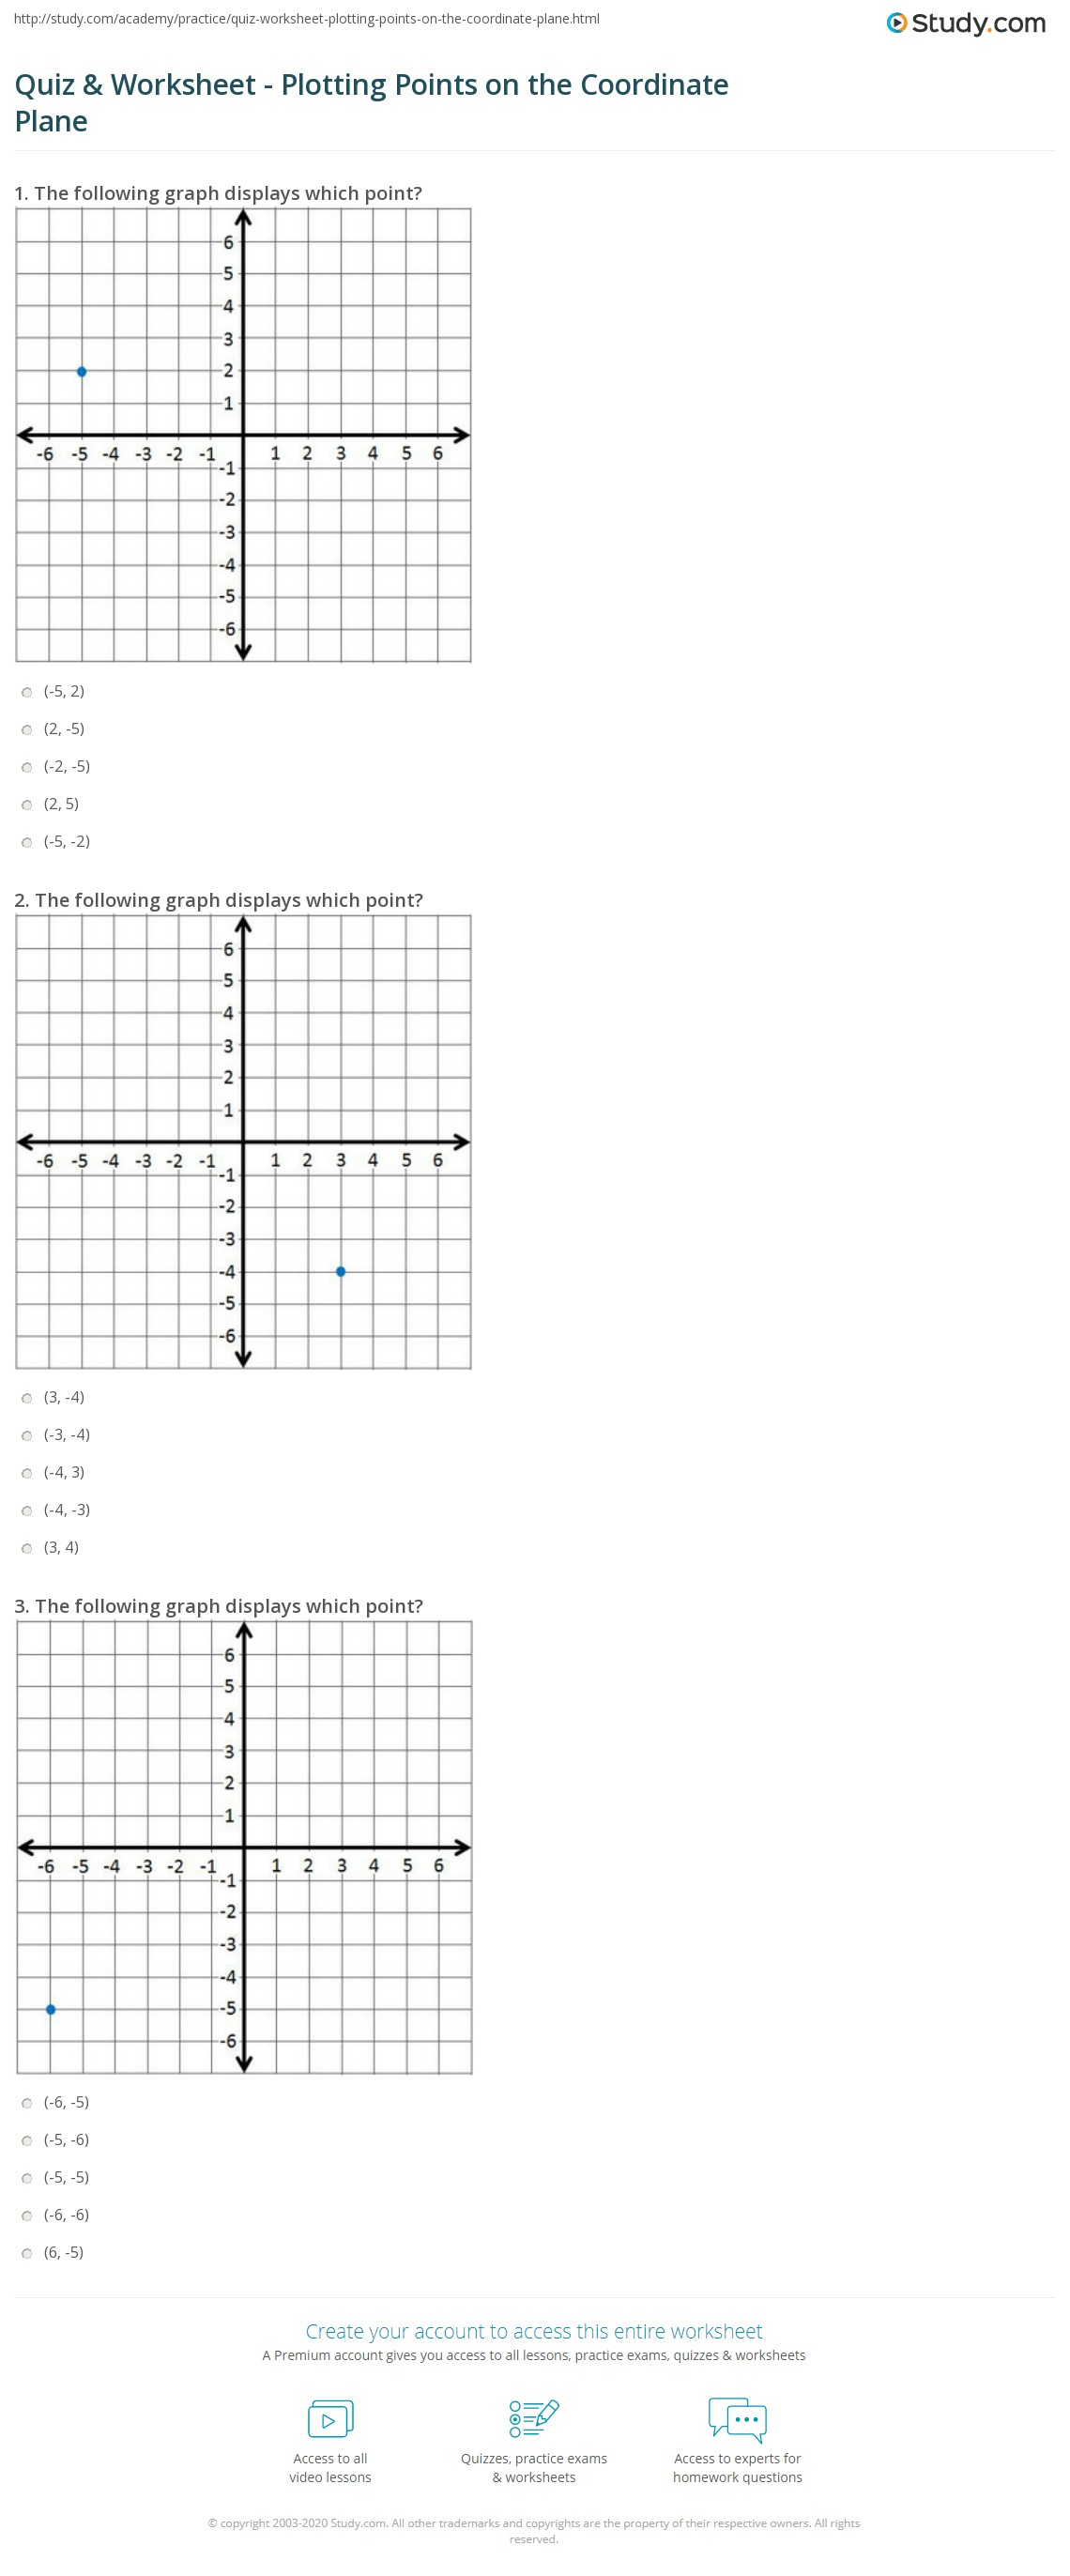 Worksheets Coordinate Plane Worksheets quiz worksheet plotting points on the coordinate plane study com print worksheet